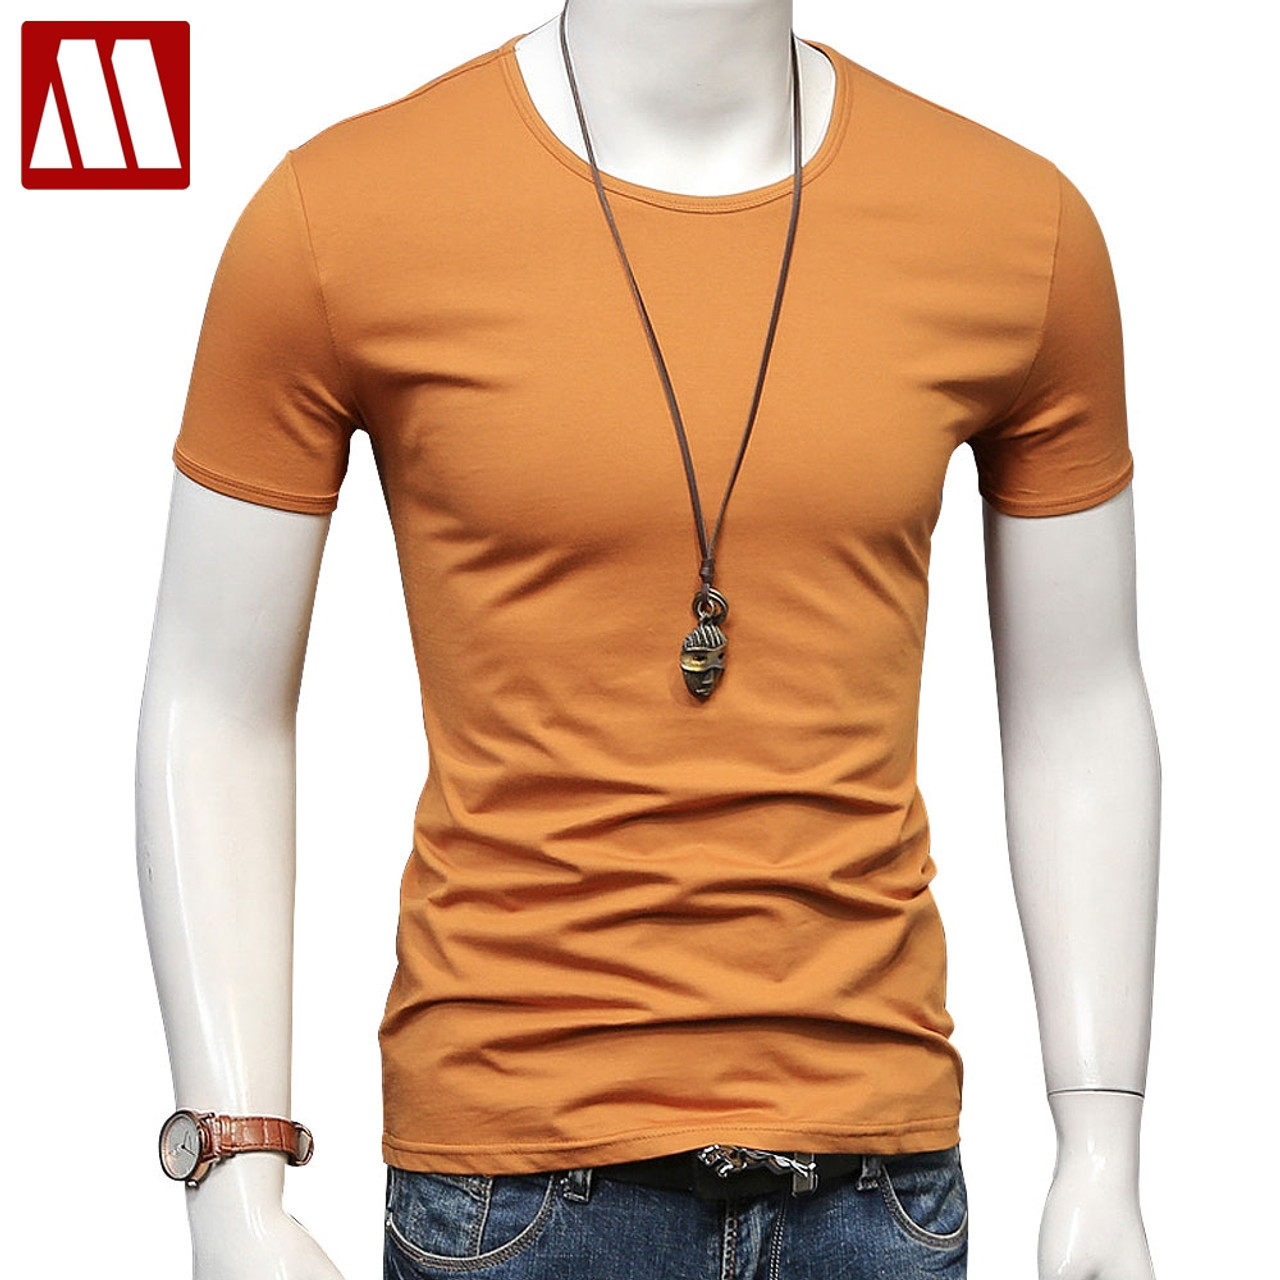 d19b02f5 2018 New Fashion Man Cotton Casual t shirt Summer Style T-shirt Mens o-neck  Comfortable Homme Short Sleeve Top Tee Plus Size 5XL - OnshopDeals.Com